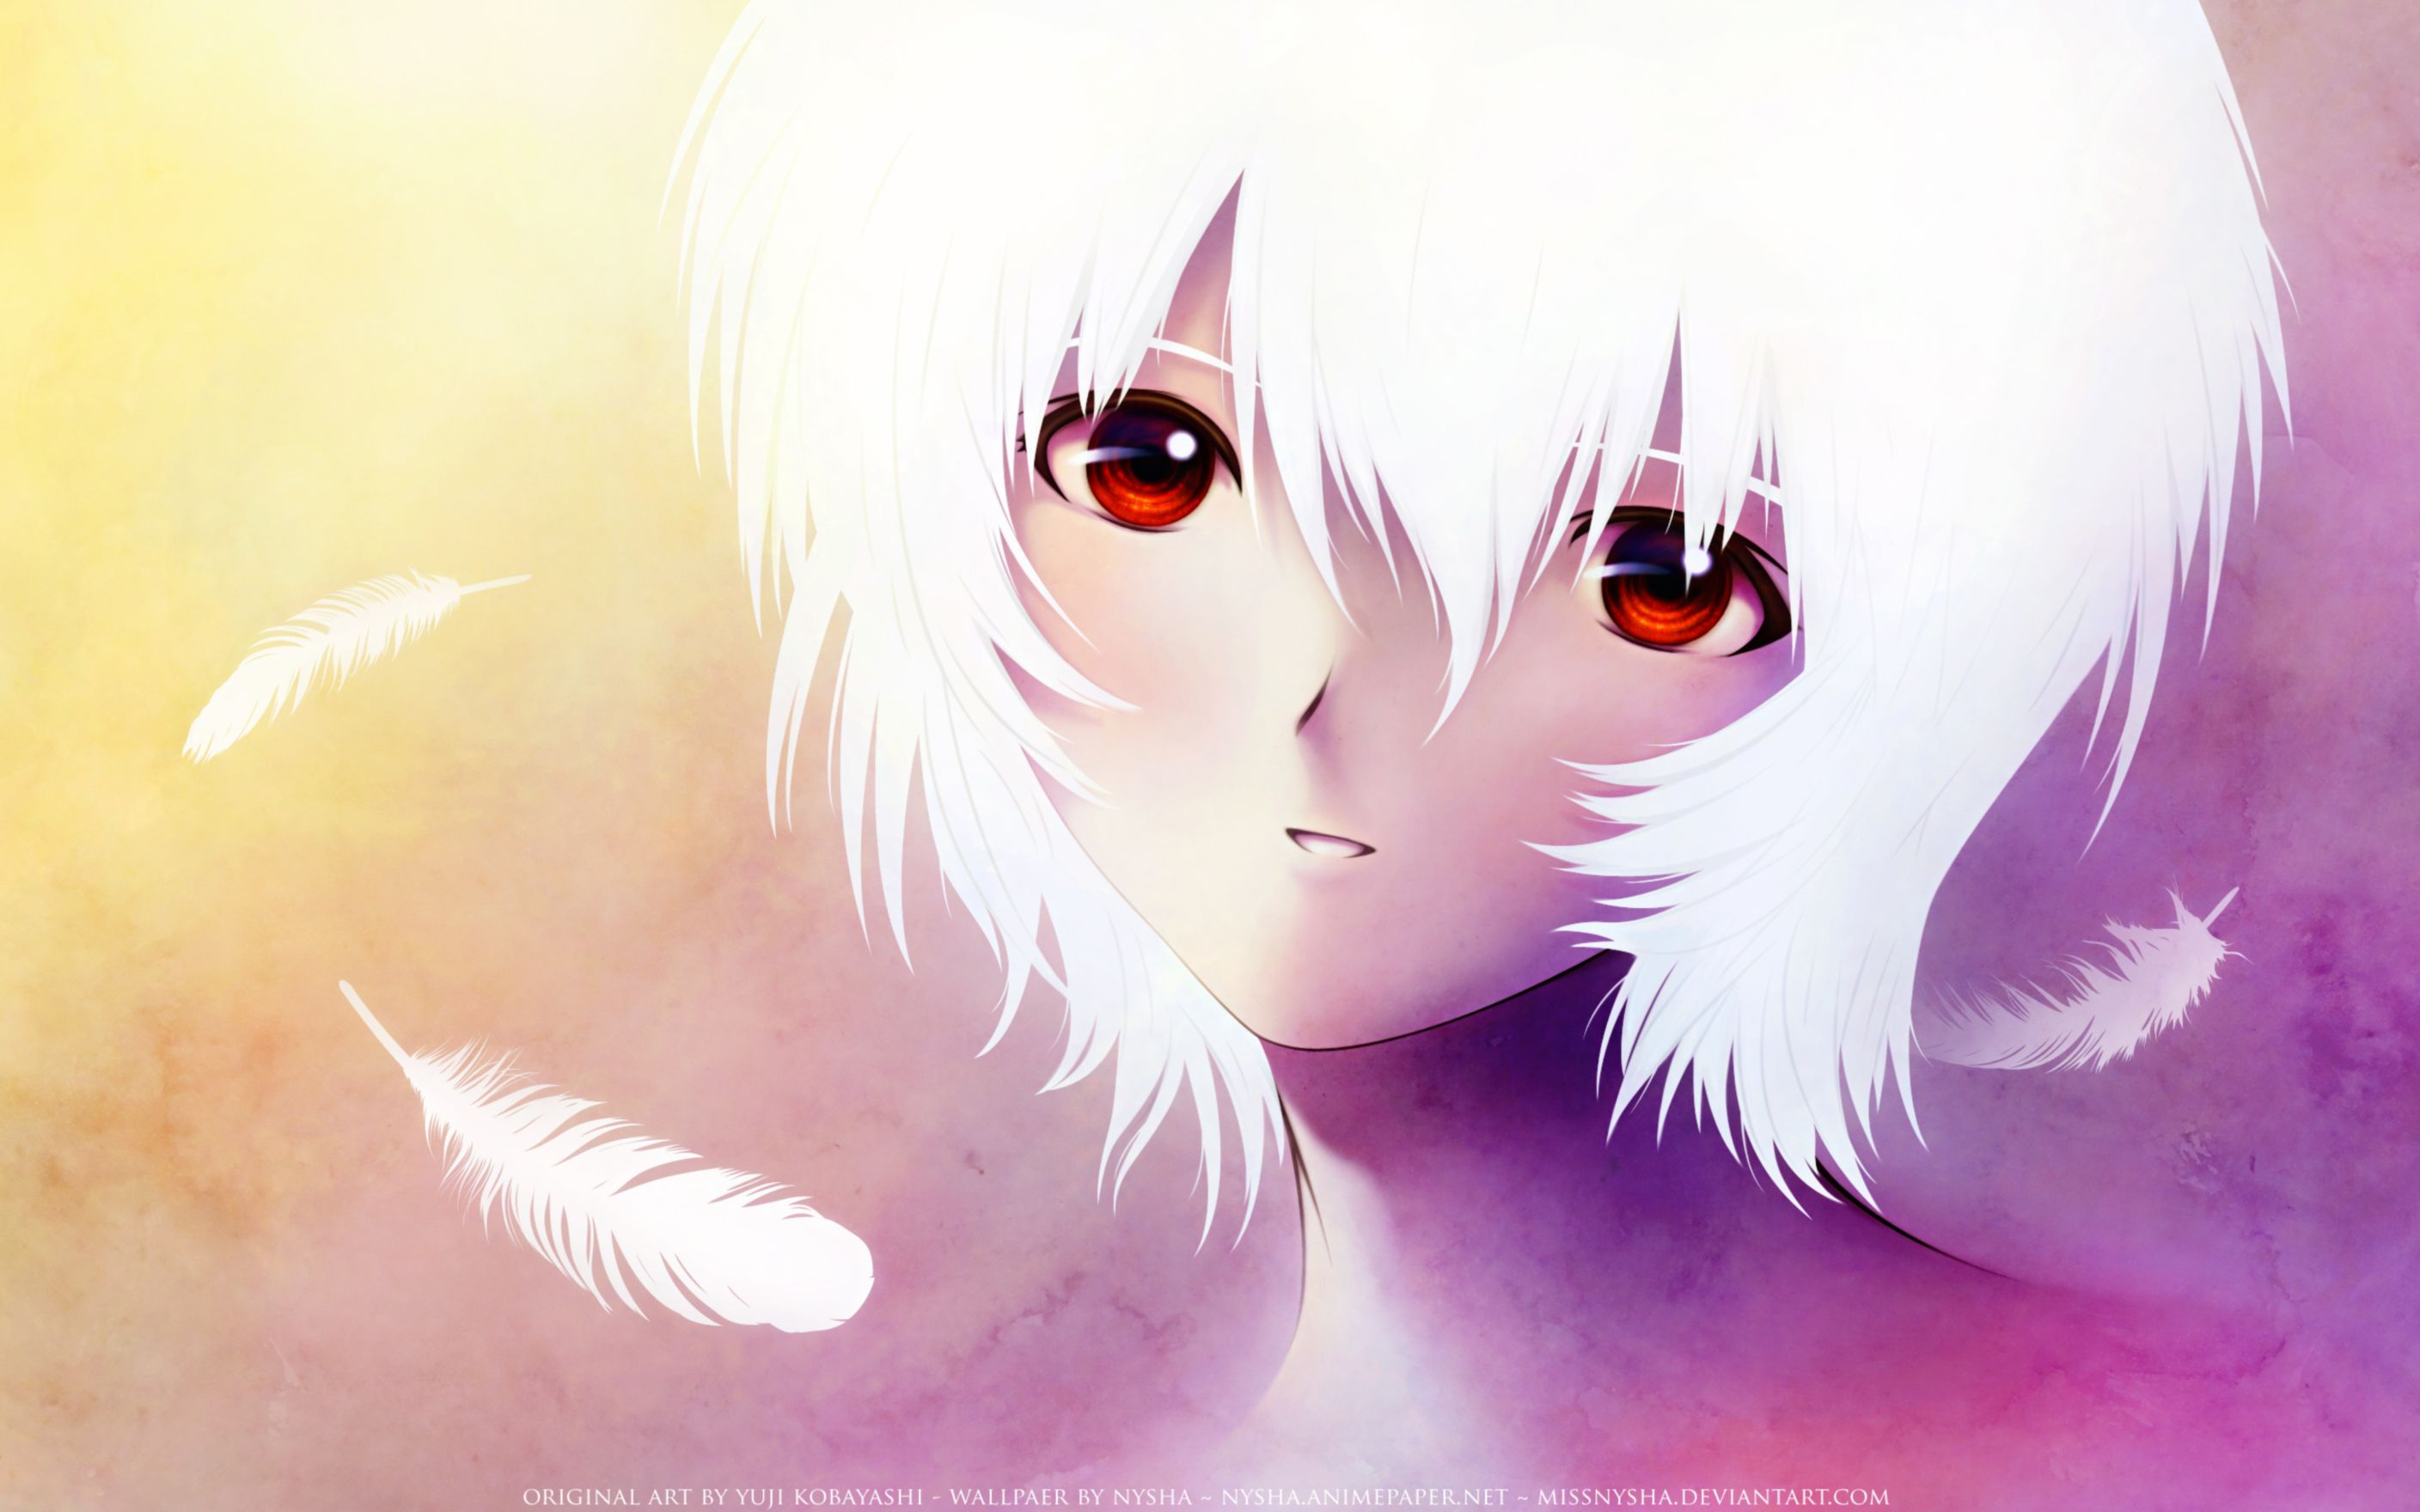 Download free HD Anime Purity Wide Wallpaper, image